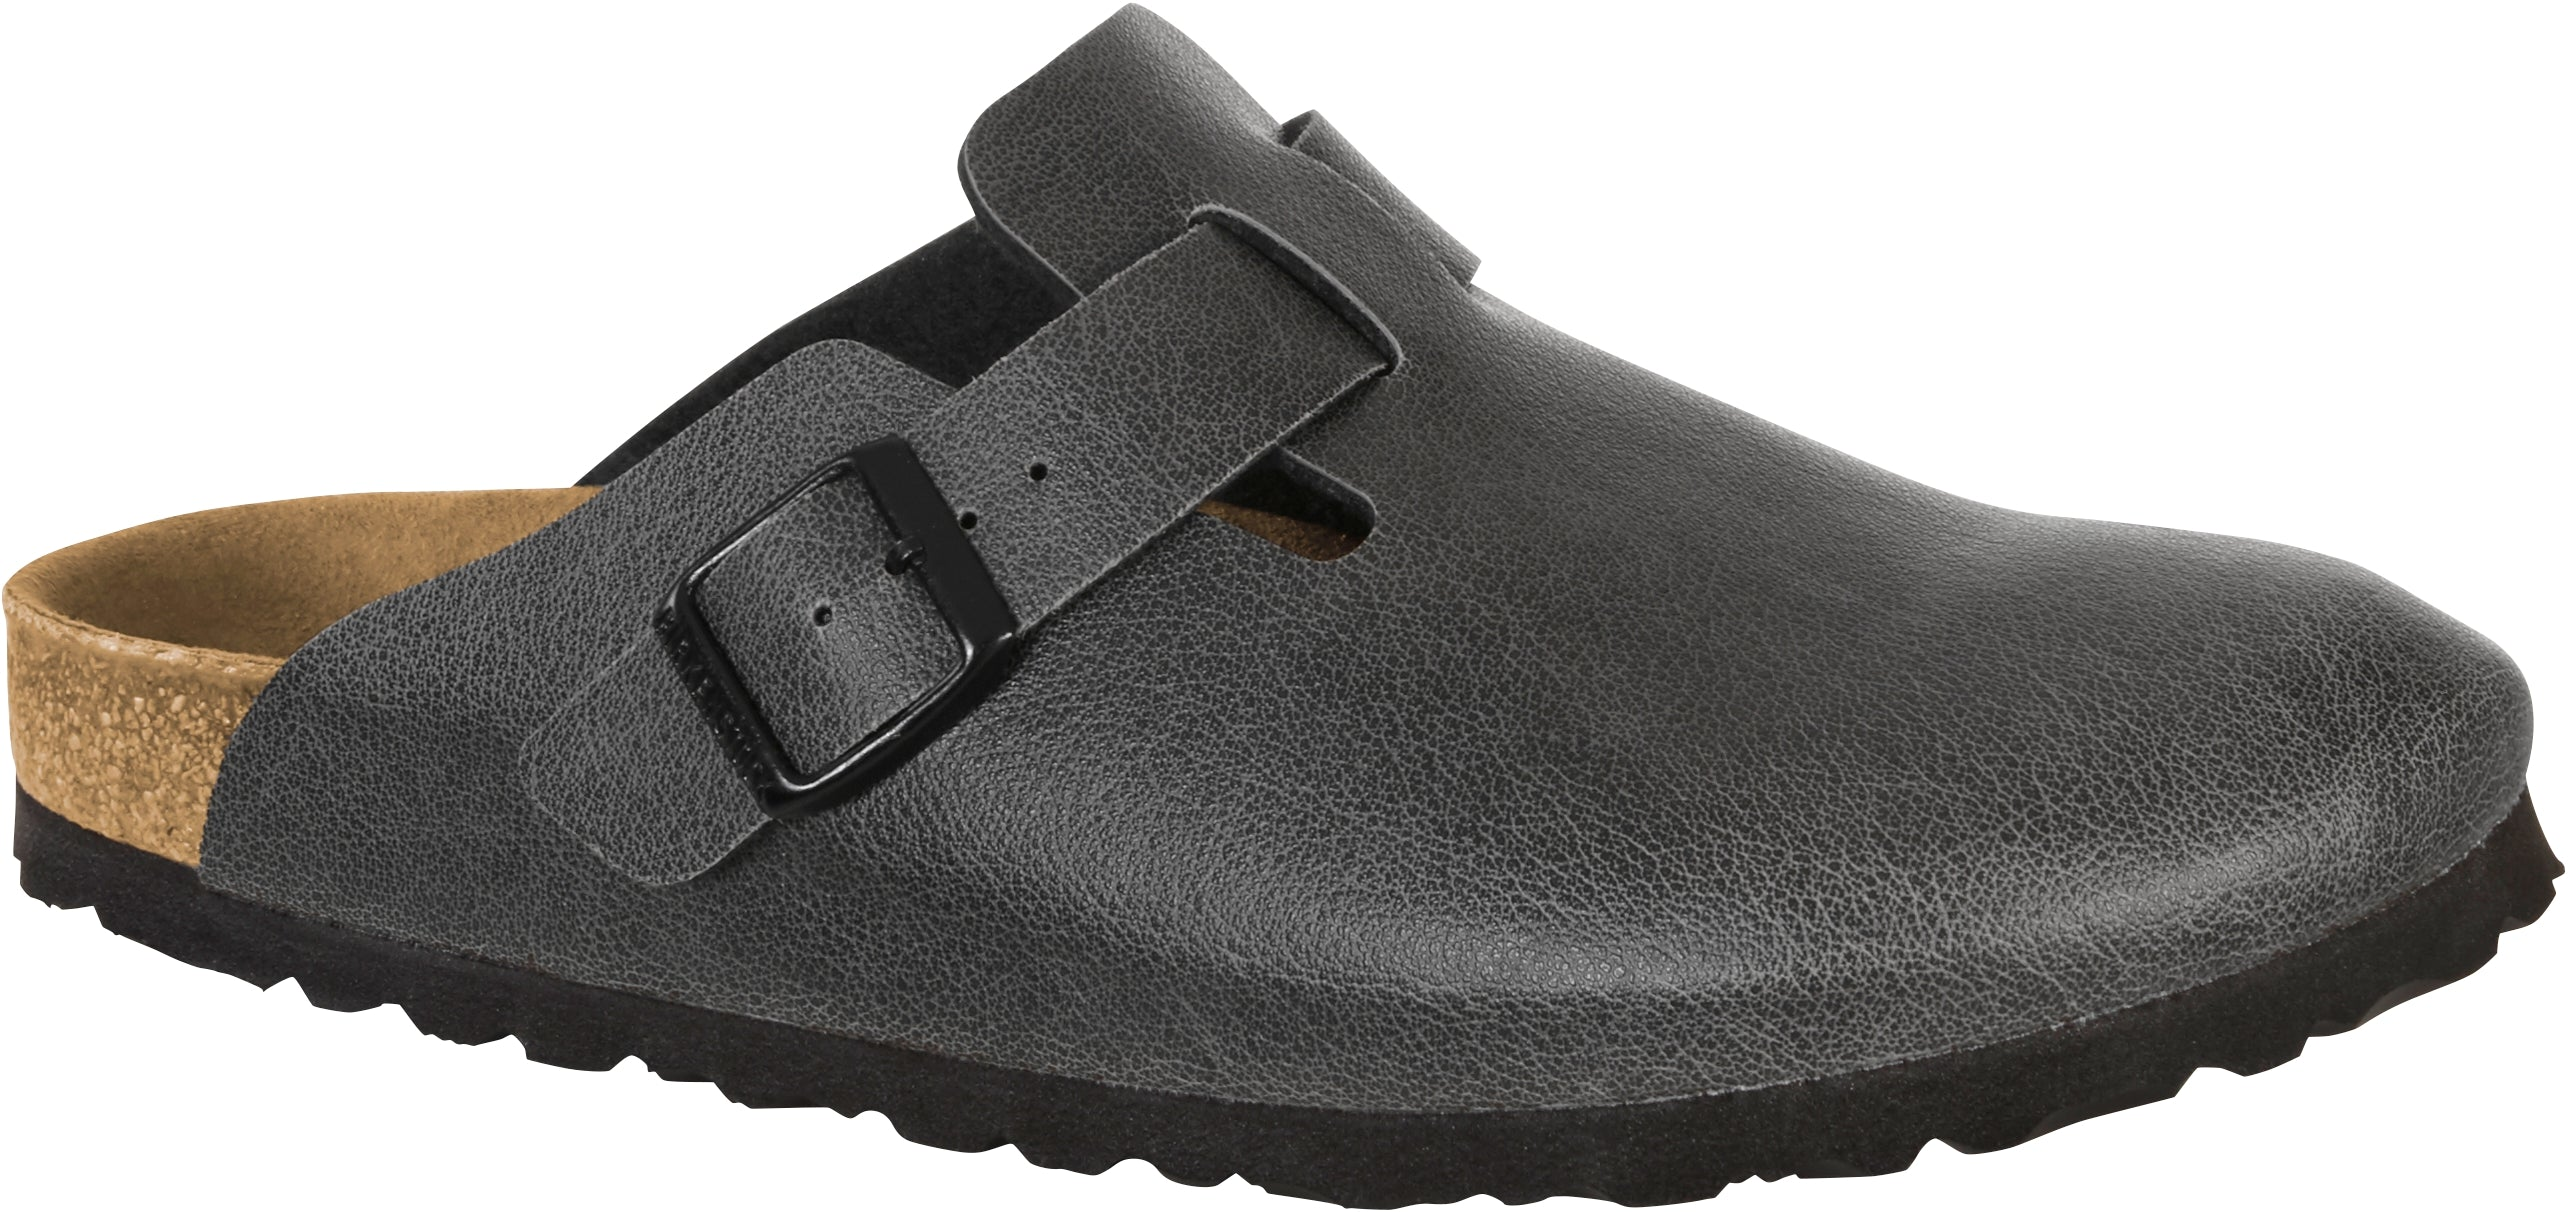 0a6a9be33c2 ... Microfiber — Regular price  149. Birkenstock Clog · Boston Vegan - Pull  Up Anthracite Birko-Flor